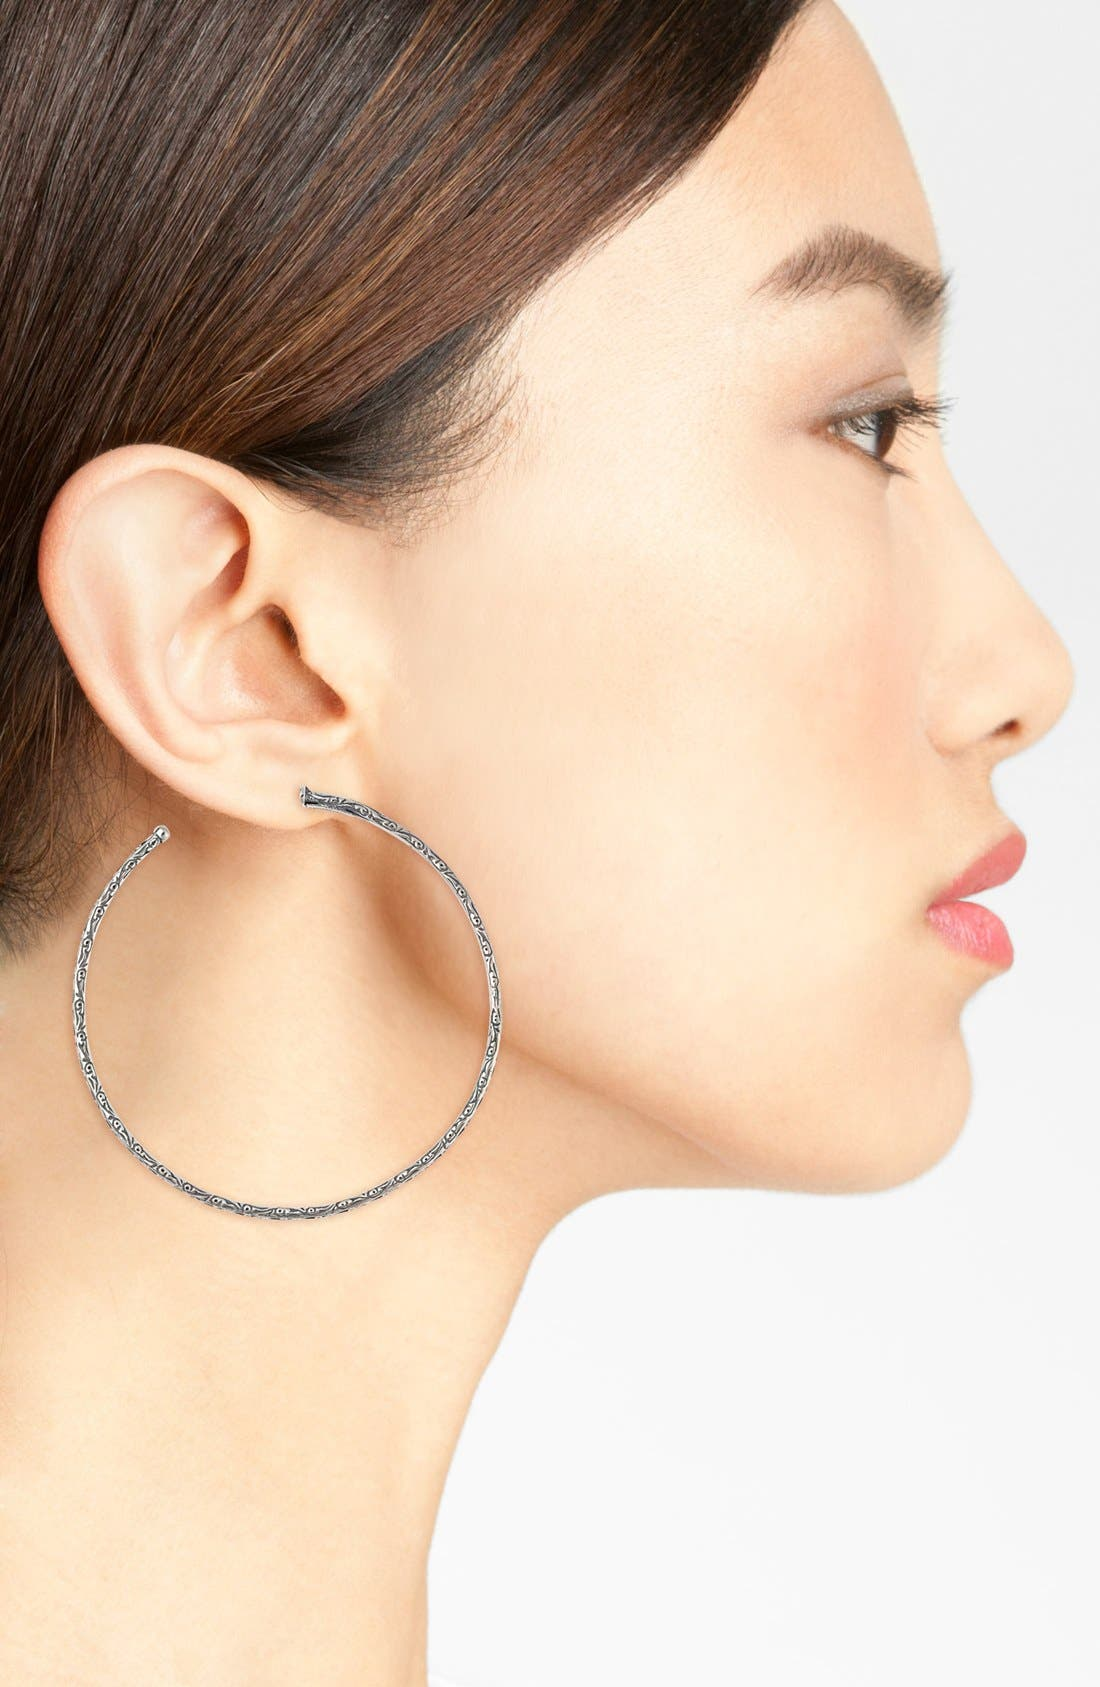 'Silver Classics' Large Etched Hoop Earrings,                             Alternate thumbnail 2, color,                             SILVER